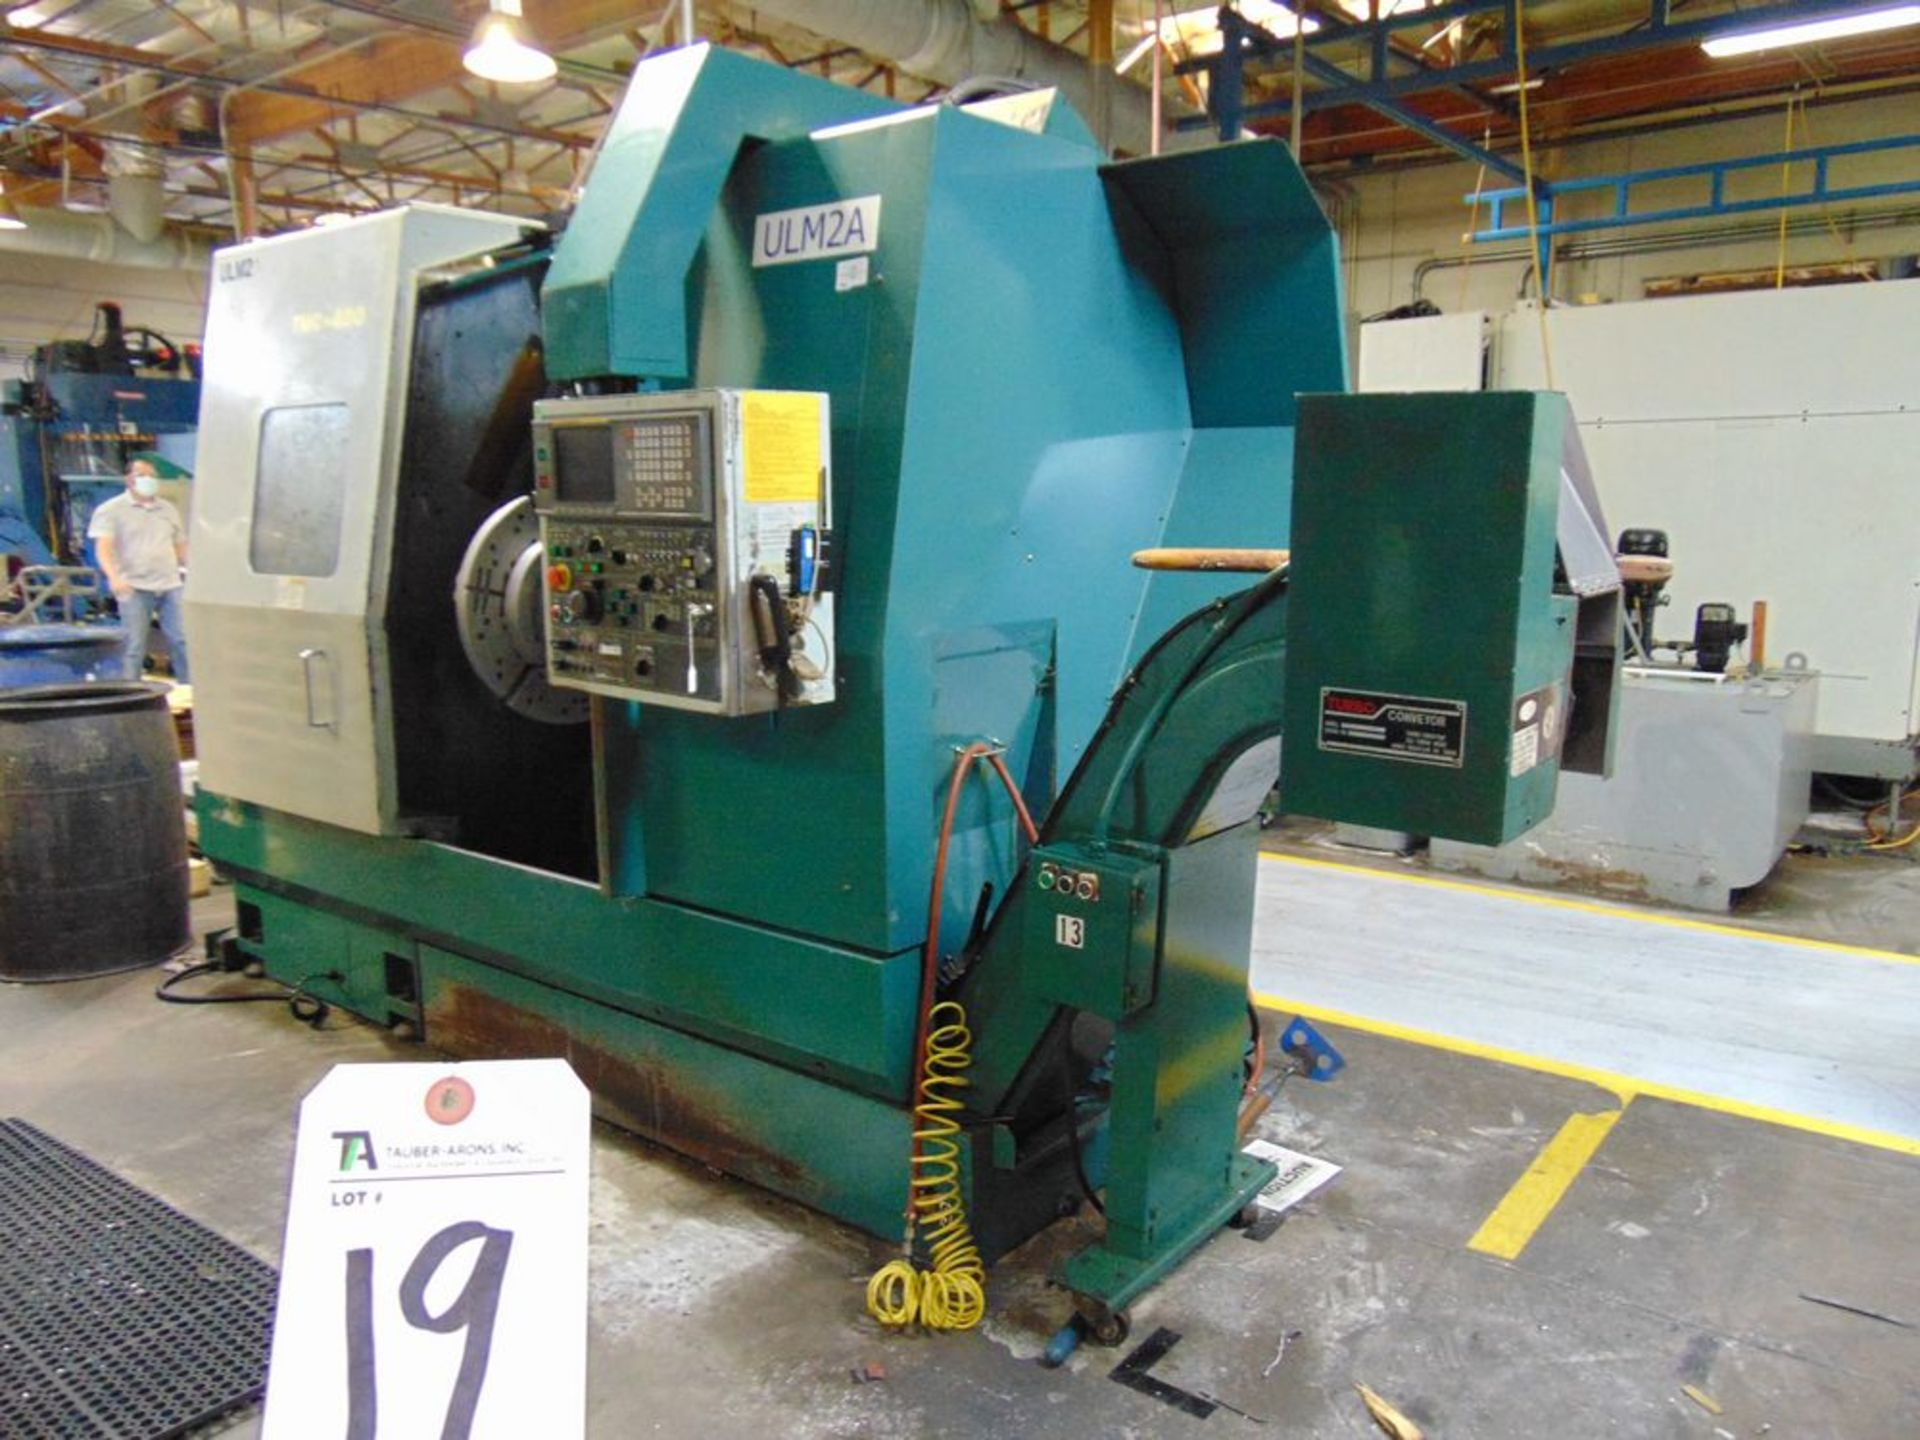 Lot 19 - Nakamura Tome mod. TMC-400, CNC Turning Center, 12-Position Turret, Turbo Chip Conveyor, Tail Stock,